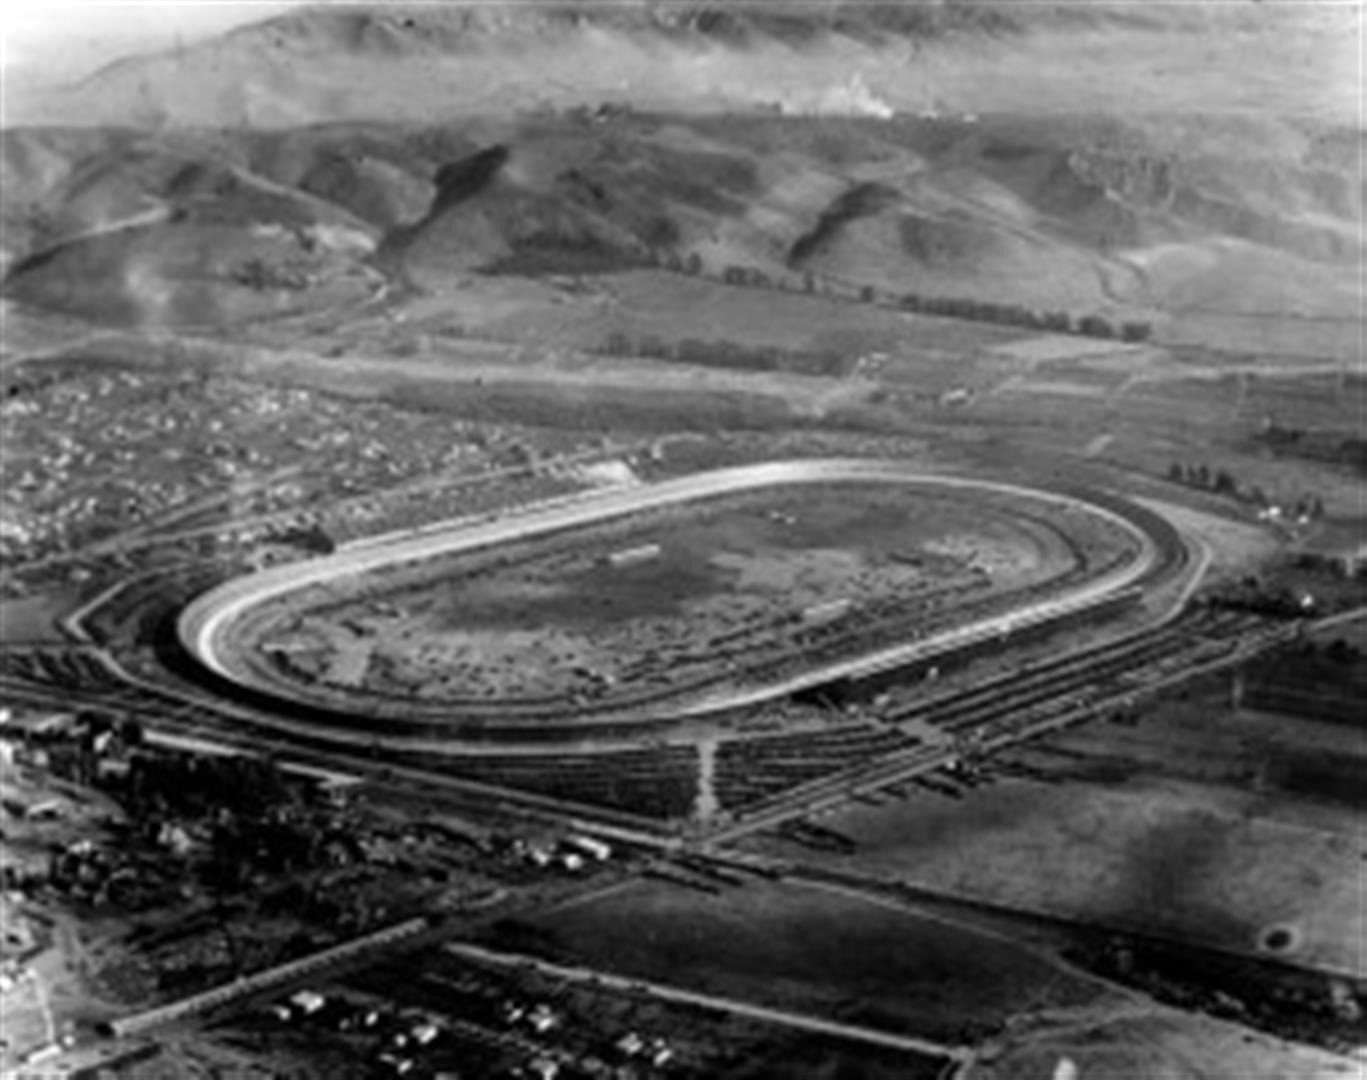 Lincoln Motor Company >> The Historic Culver City Racing Scene | Culver City Historical Society